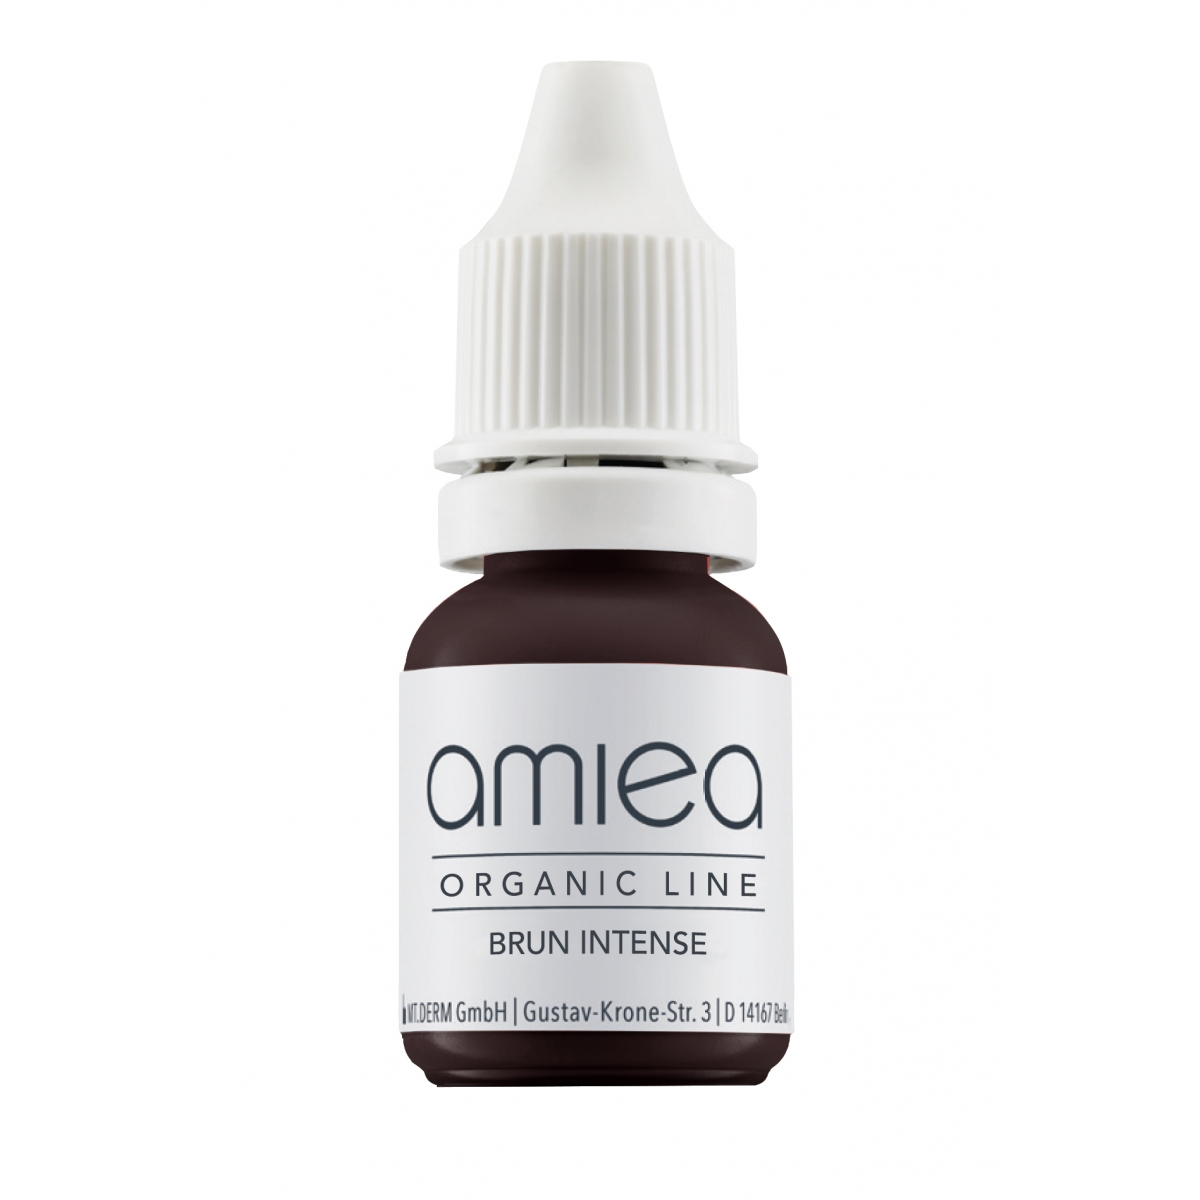 Organicline (5 ml)  - PIGMENTS AMIEA ORGANICLINE BRUN INTENSE, Flacon 5 ml